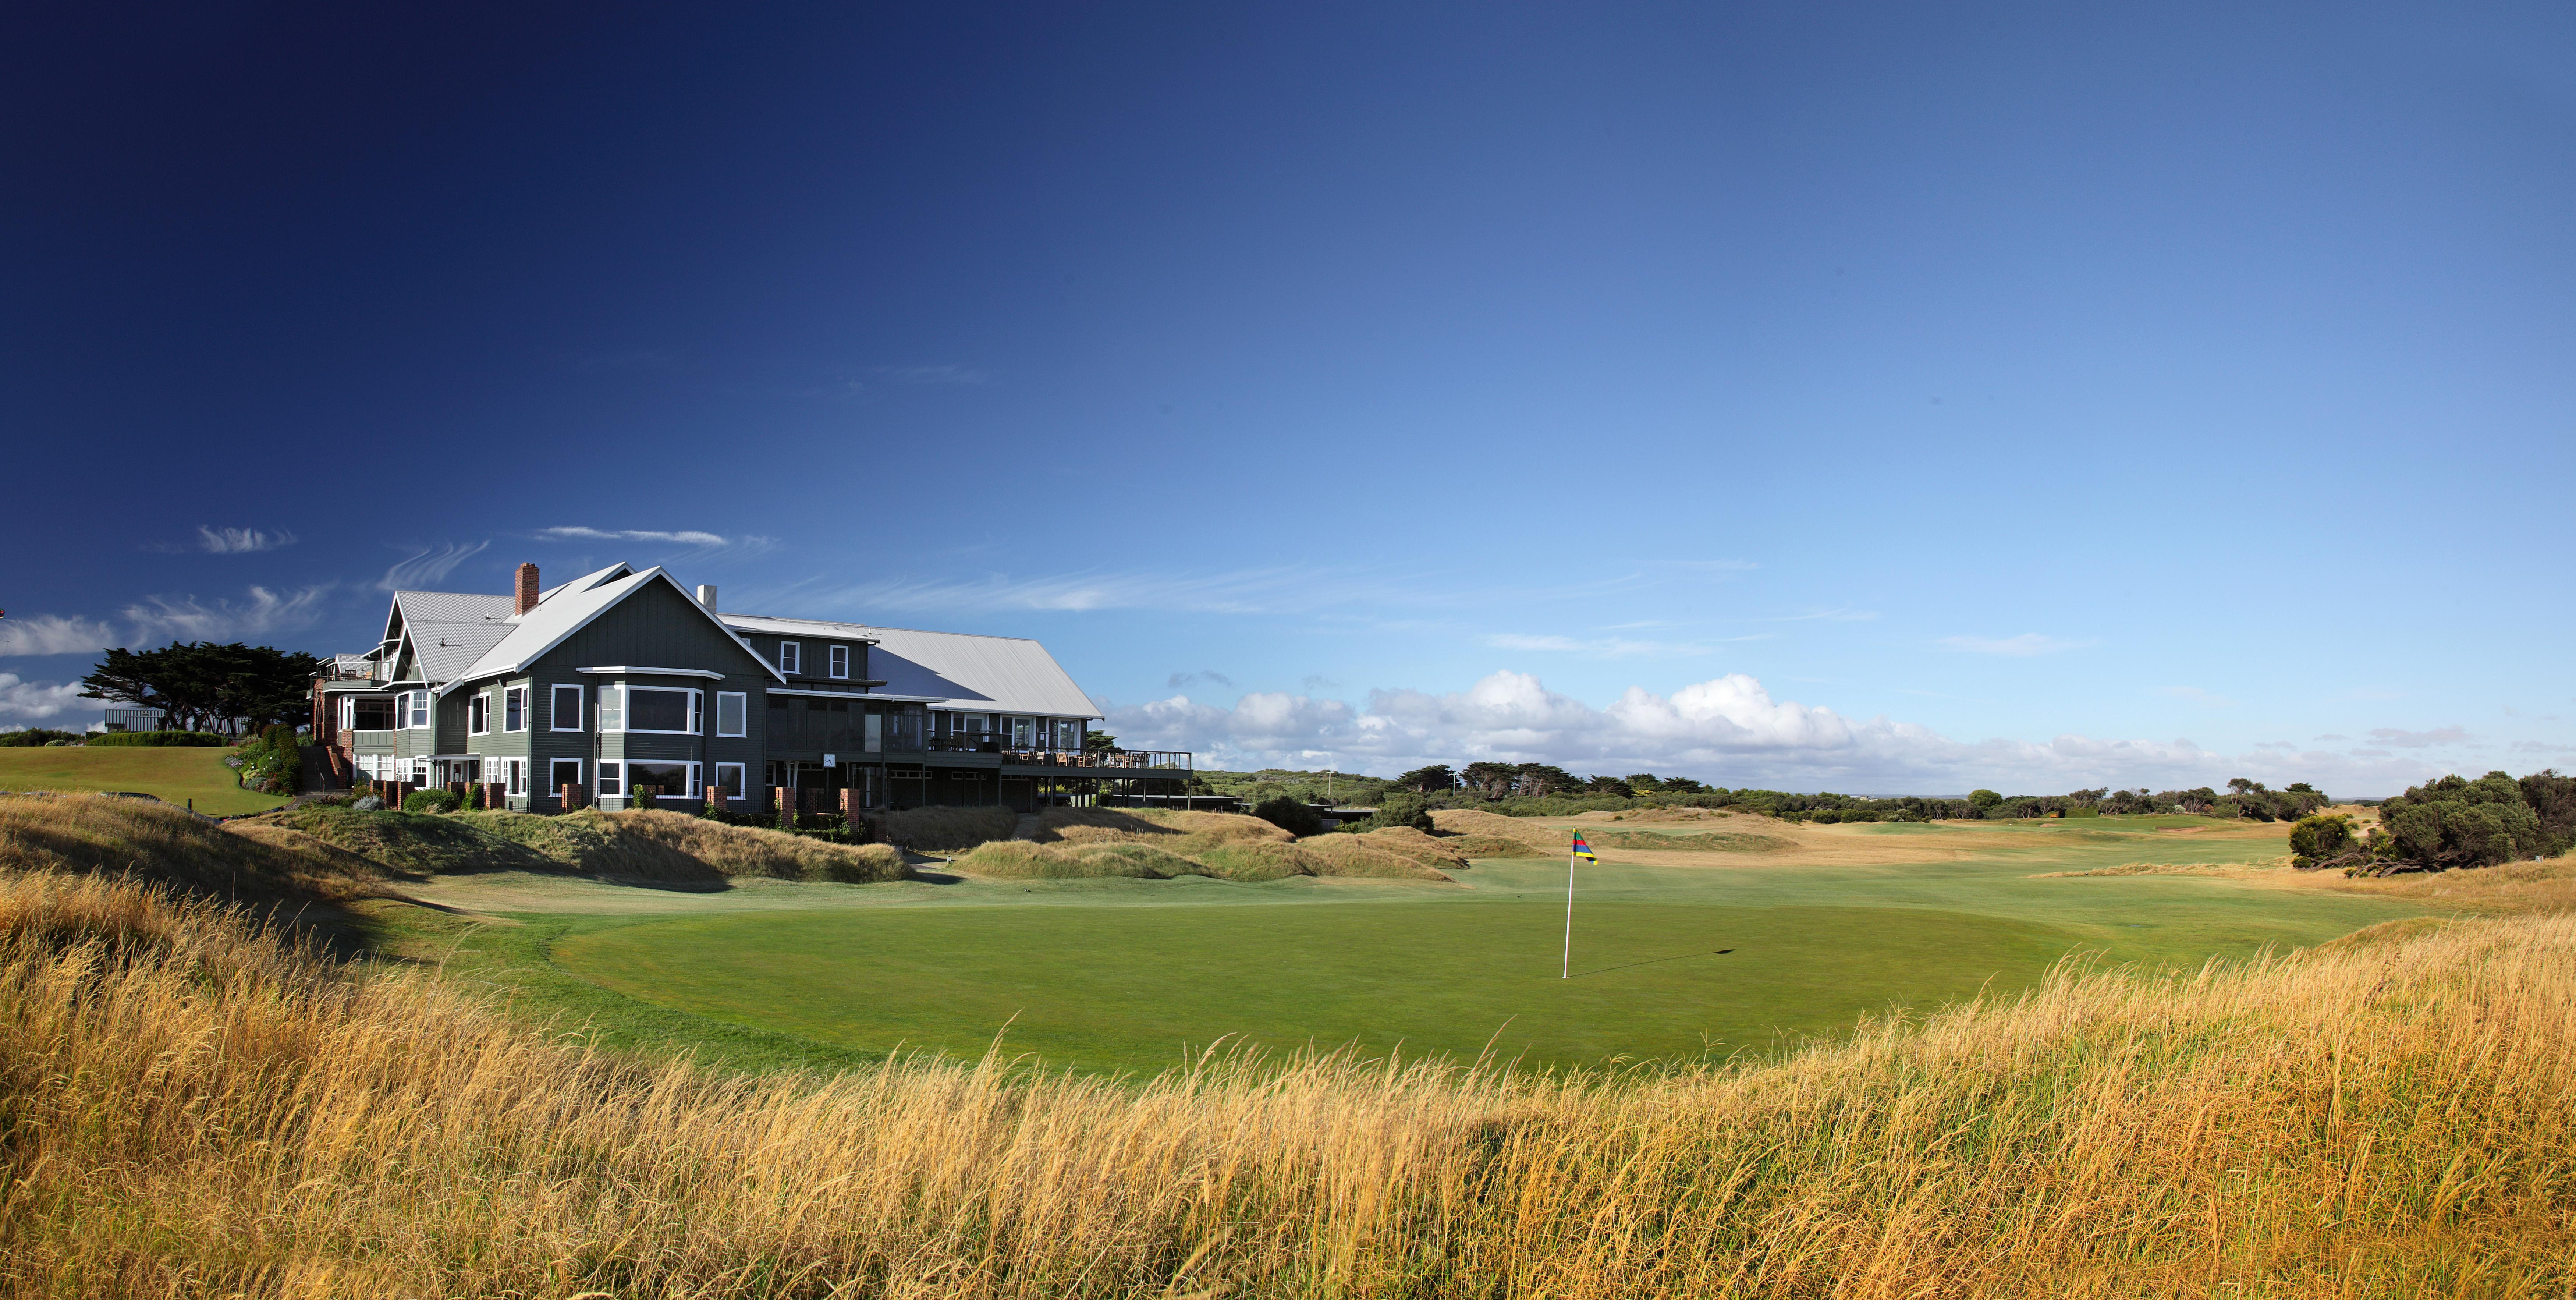 BarwonHeadsClubhouse & 18th green1